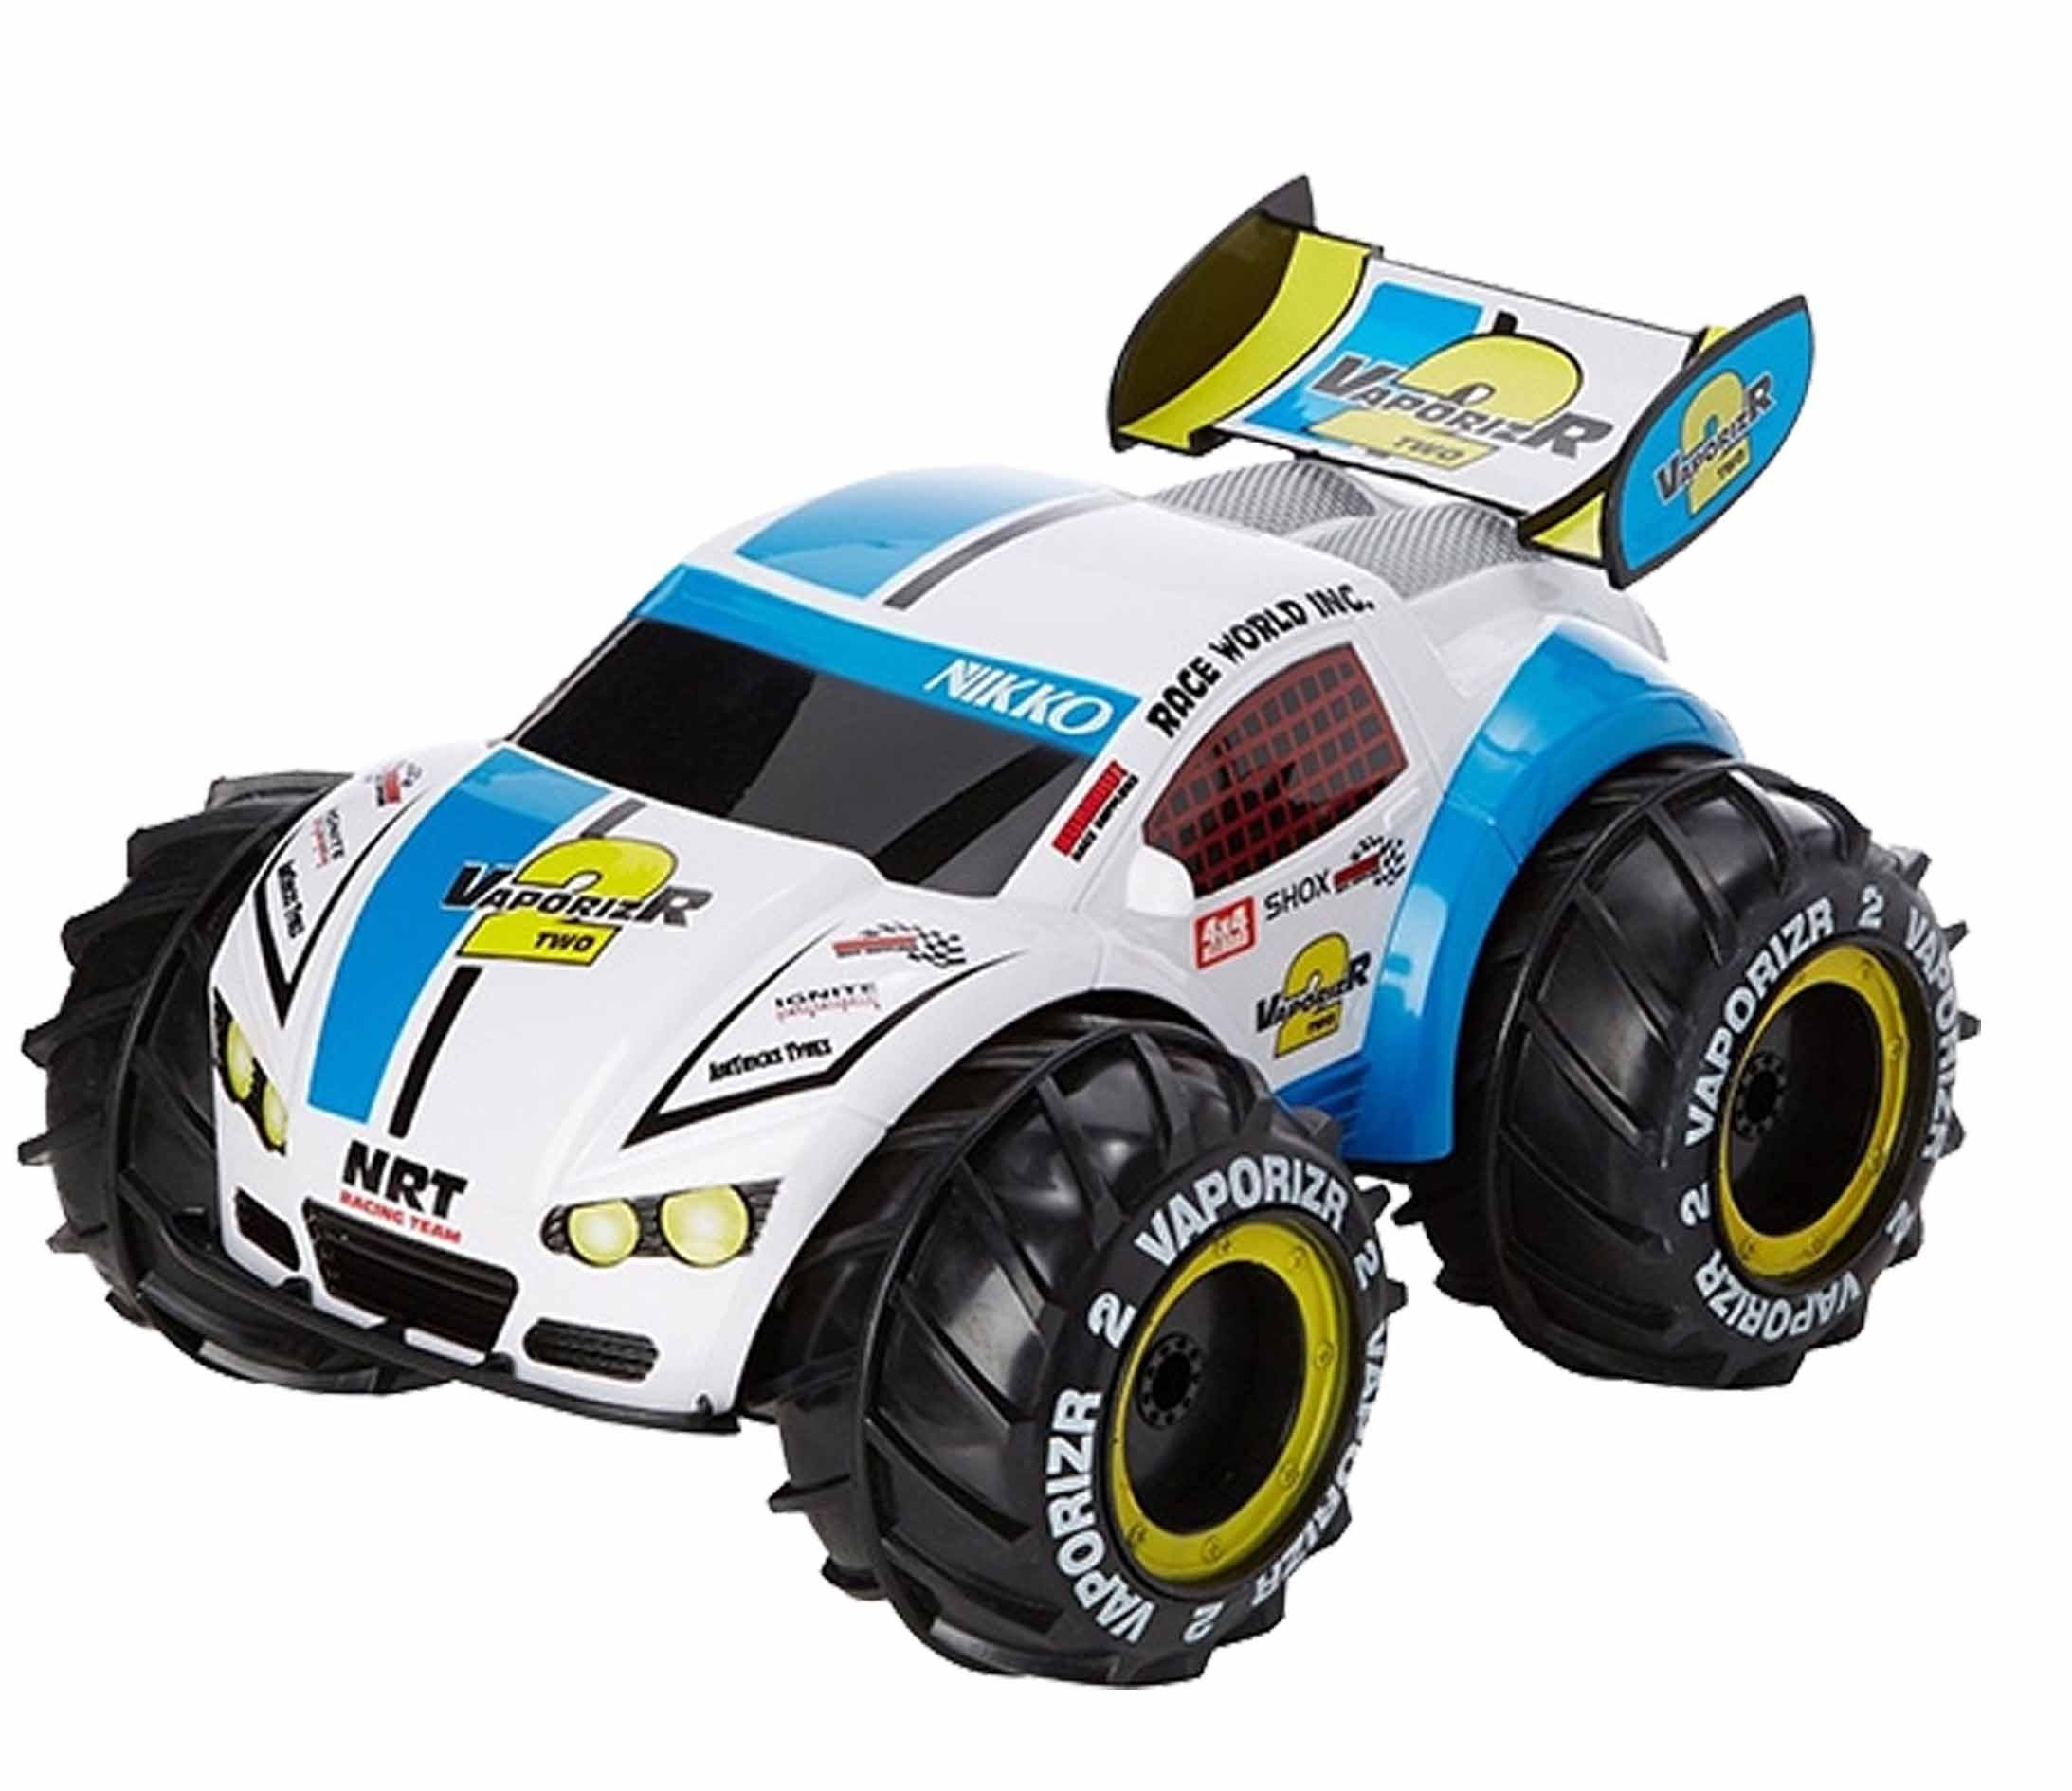 nikko rc vaporizr 2 car blue blue